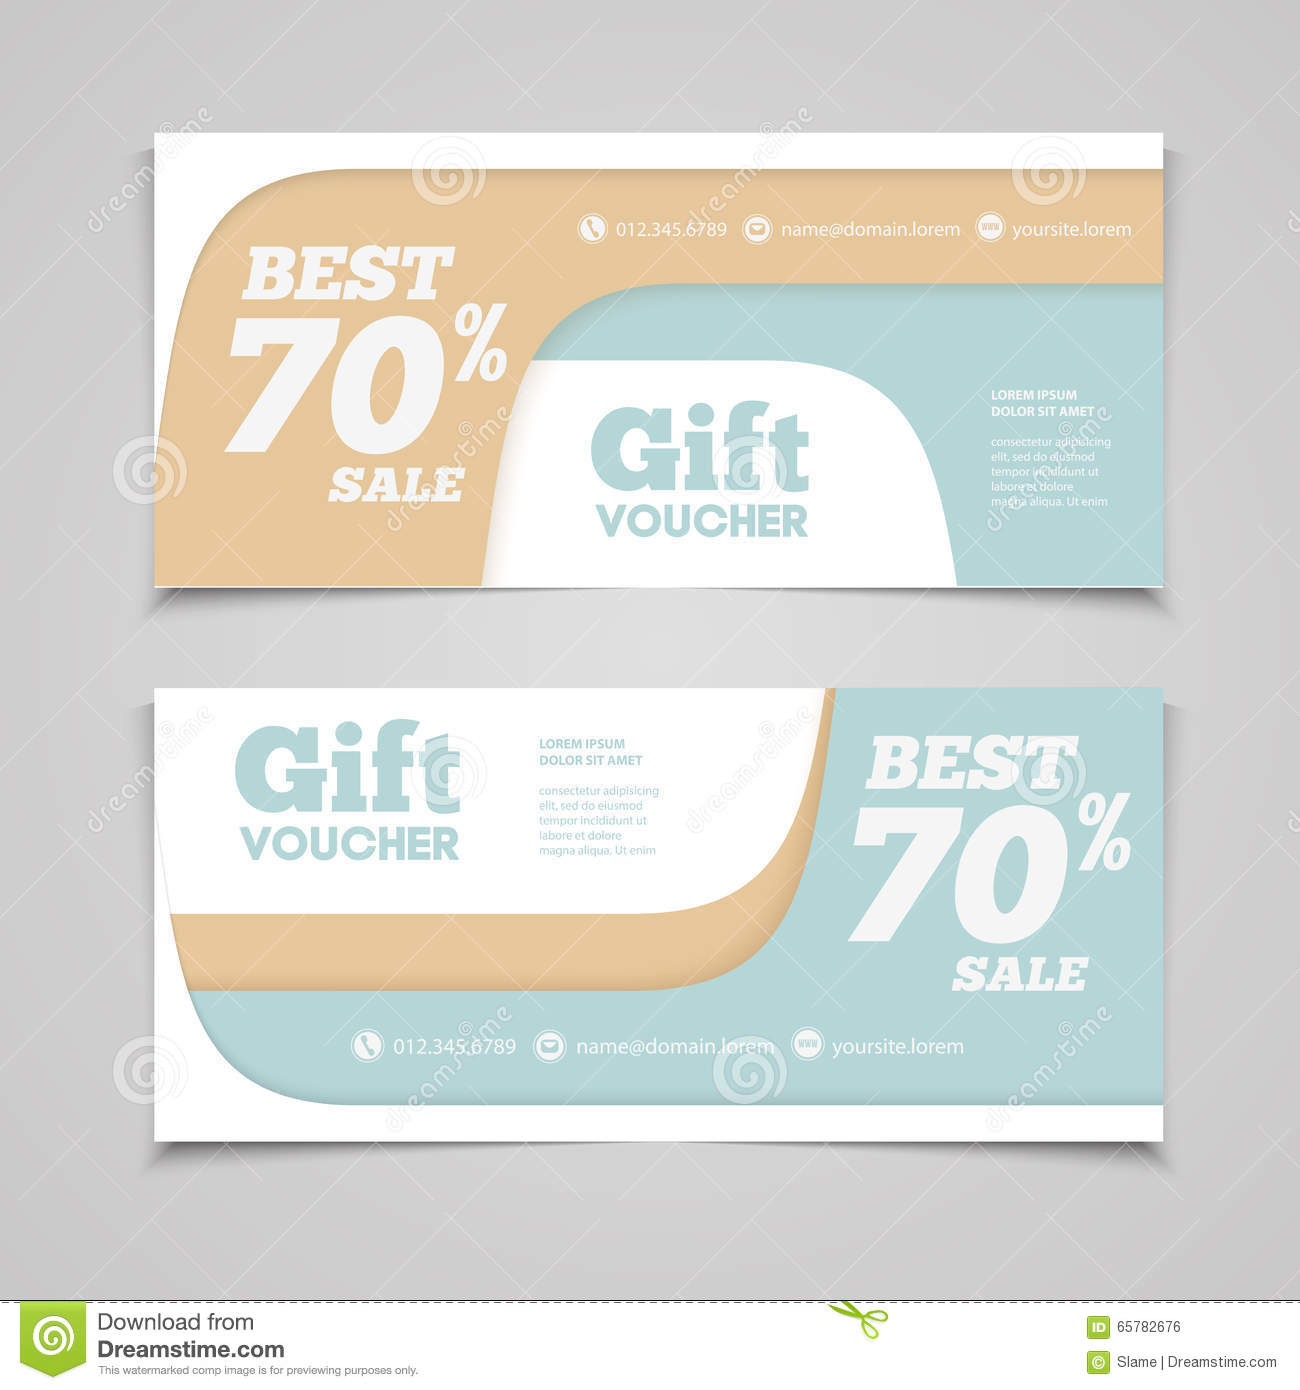 Rock climbing gift certificate template gallery certificate yoga gift certificate template images templates example free hotel gift certificate template gallery templates example free yadclub Choice Image